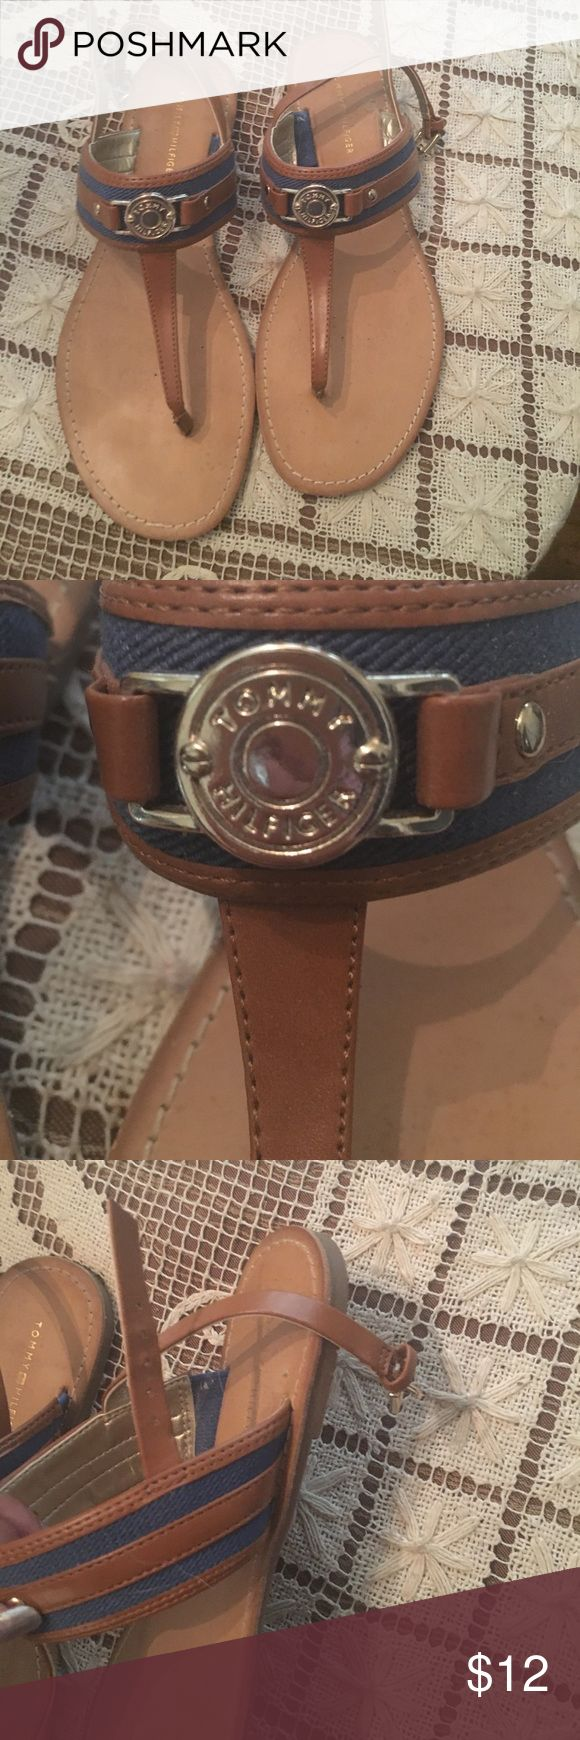 Tommy Hilfiger sandals in women's 7.5 Sandals for sale women's 7.5 TH Tommy Hilfiger Shoes Sandals